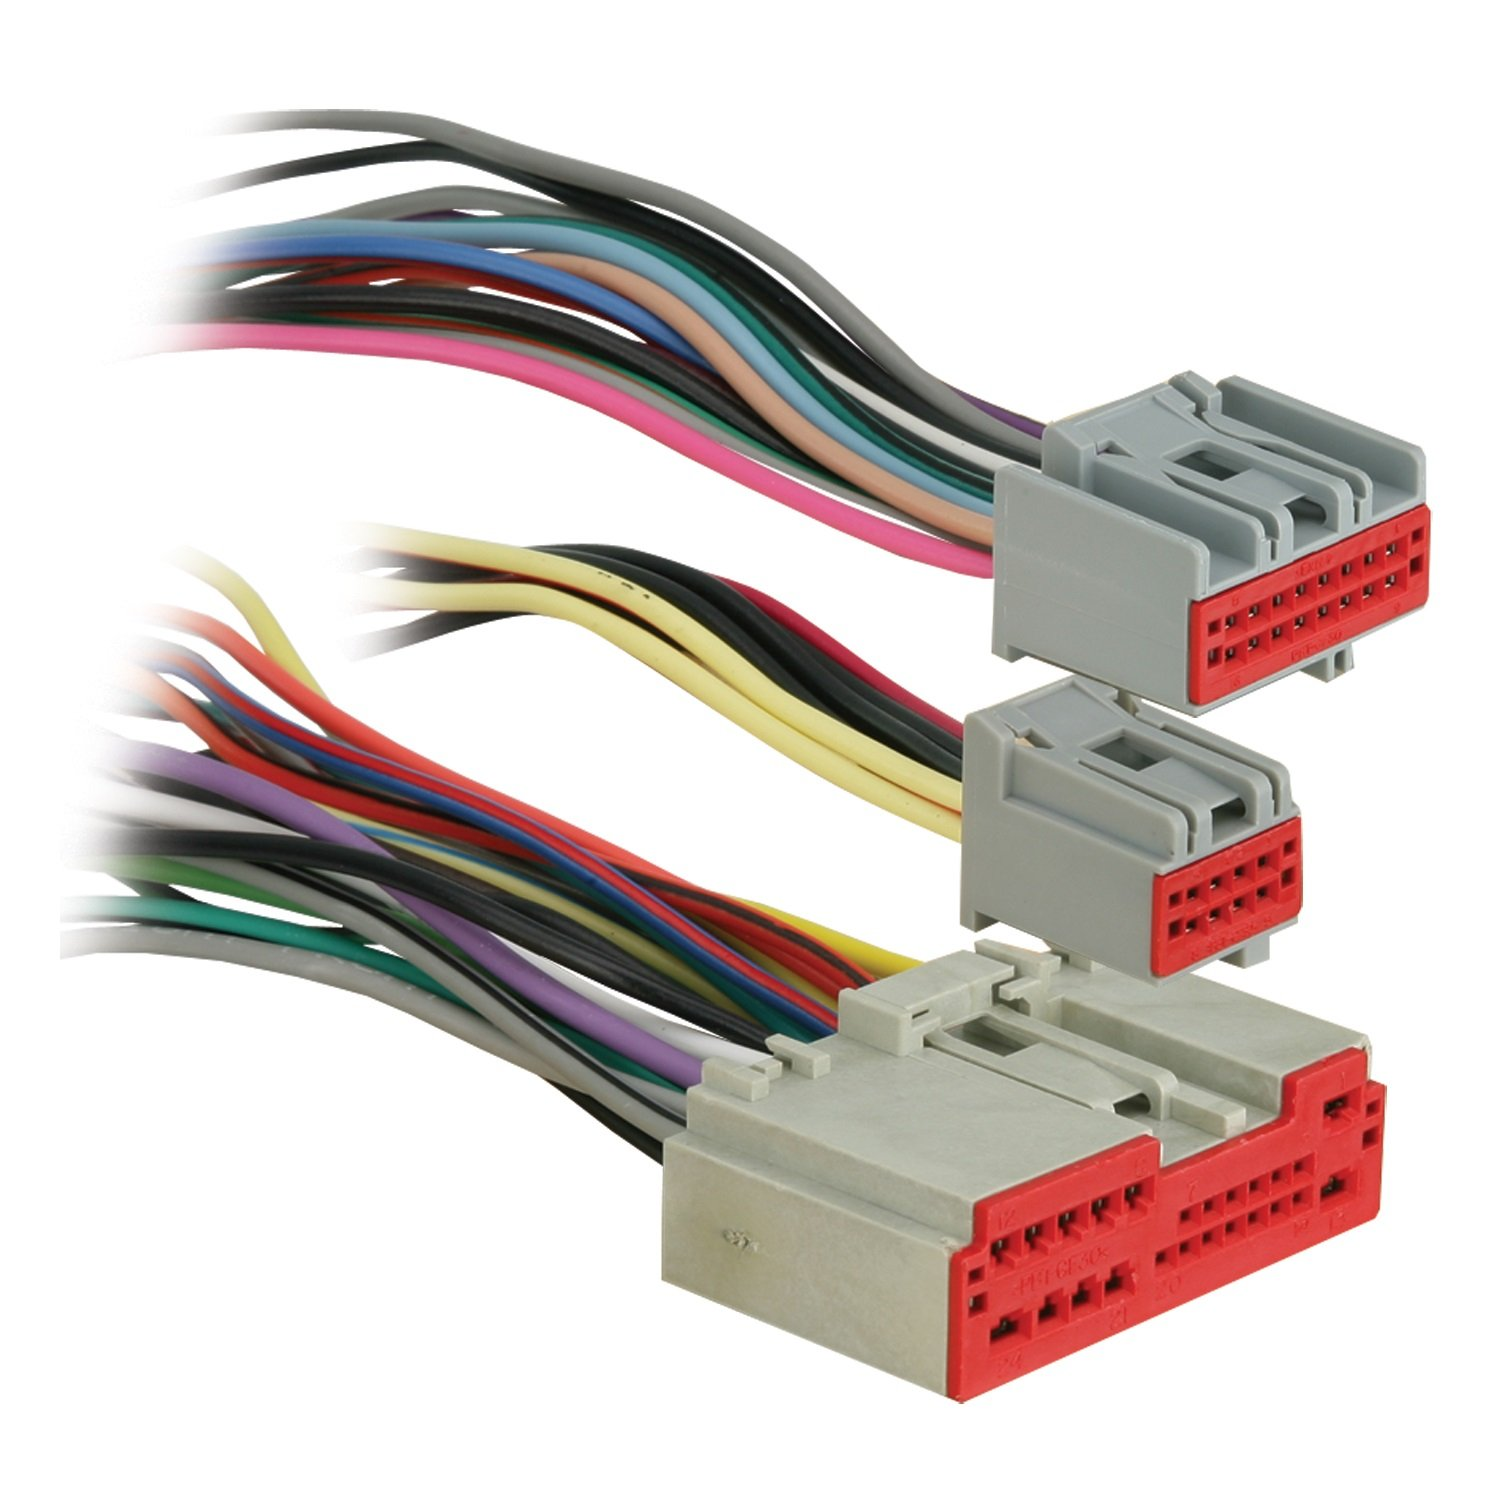 71qqcILSKiL._SL1500_ amazon com metra reverse wiring harness 71 5520 1 for select 2003 reverse wiring harness at alyssarenee.co